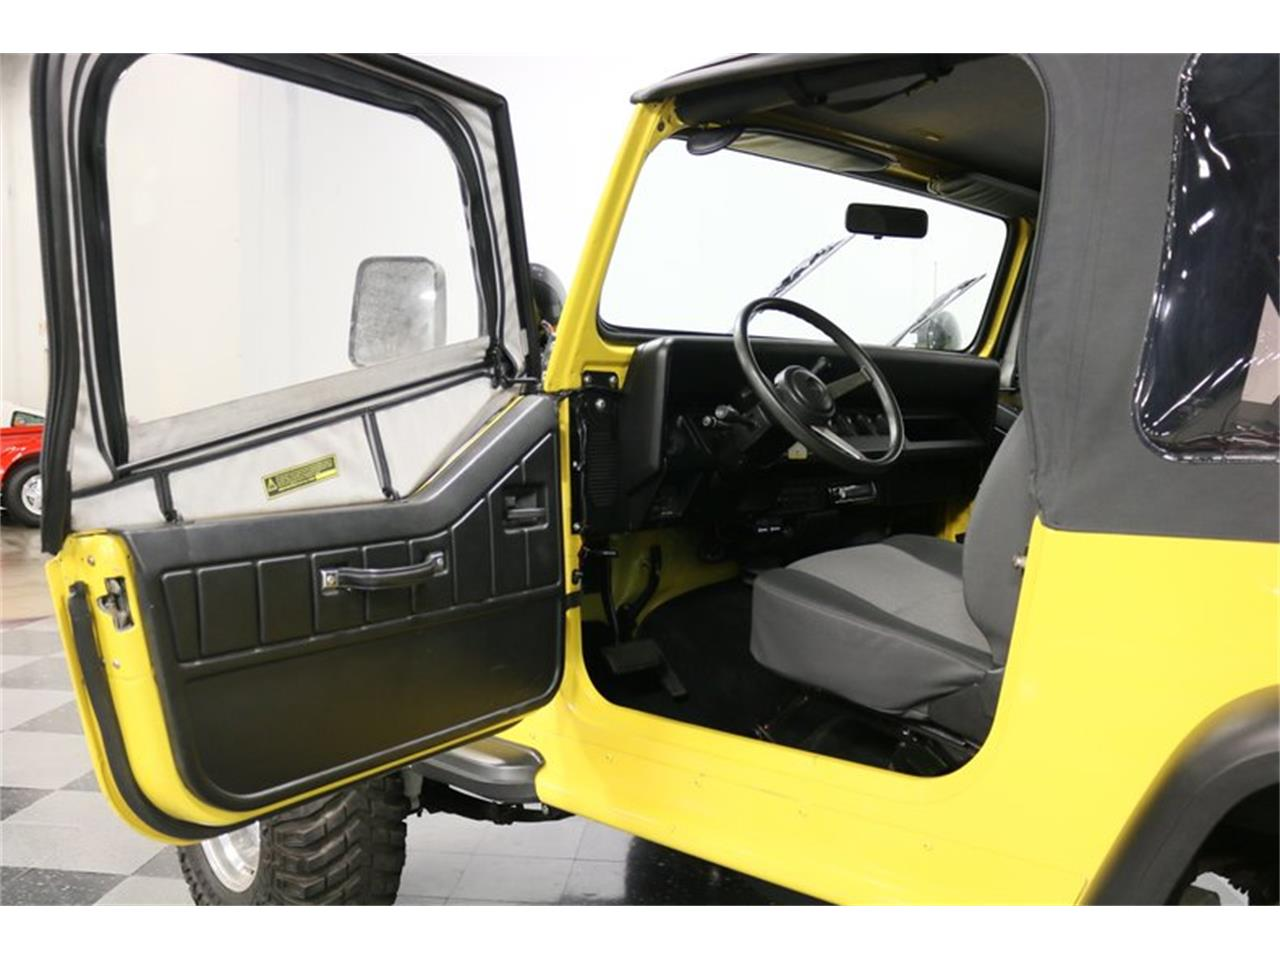 Large Picture of 1993 Jeep Wrangler located in Ft Worth Texas - $25,995.00 - P701